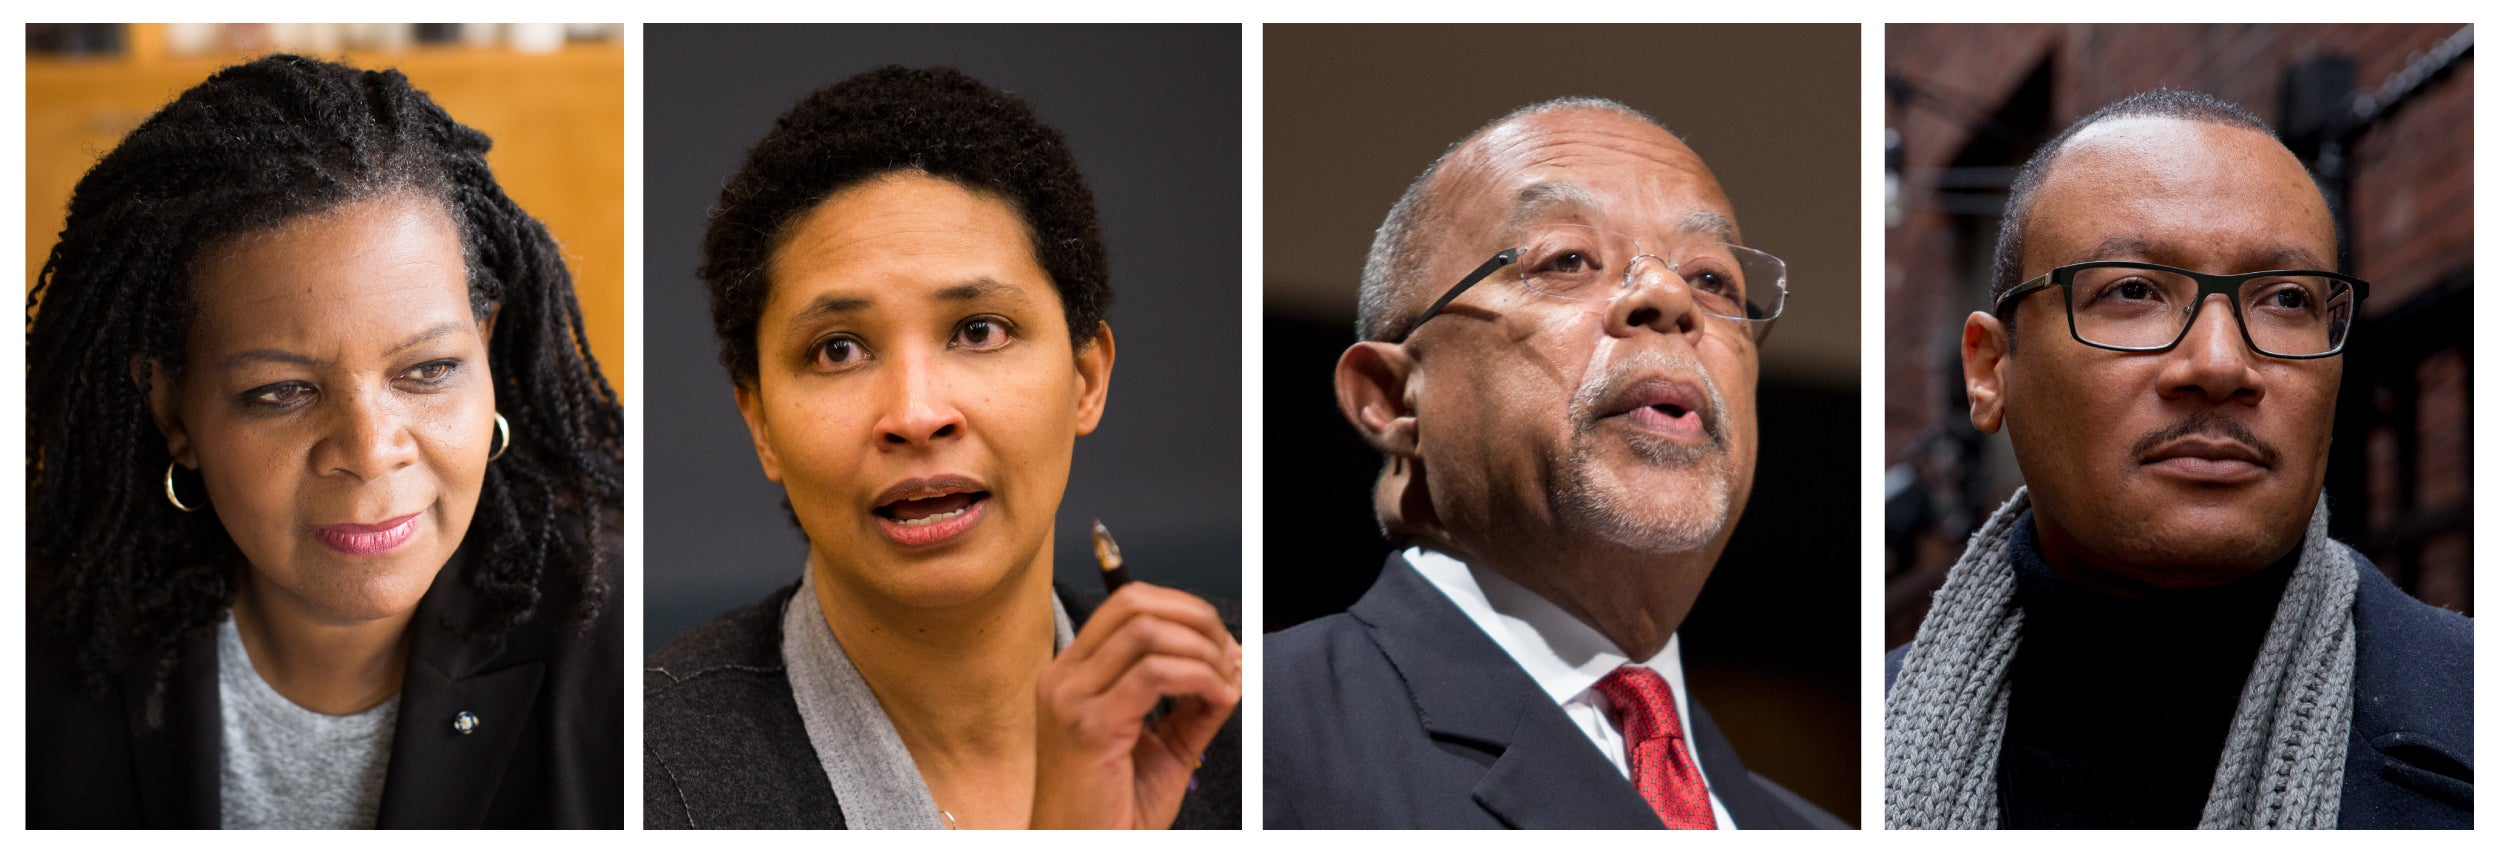 Annette Gordon-Reed (from left), Danielle Allen, Henry Louis Gates Jr., and Tommie Shelby.